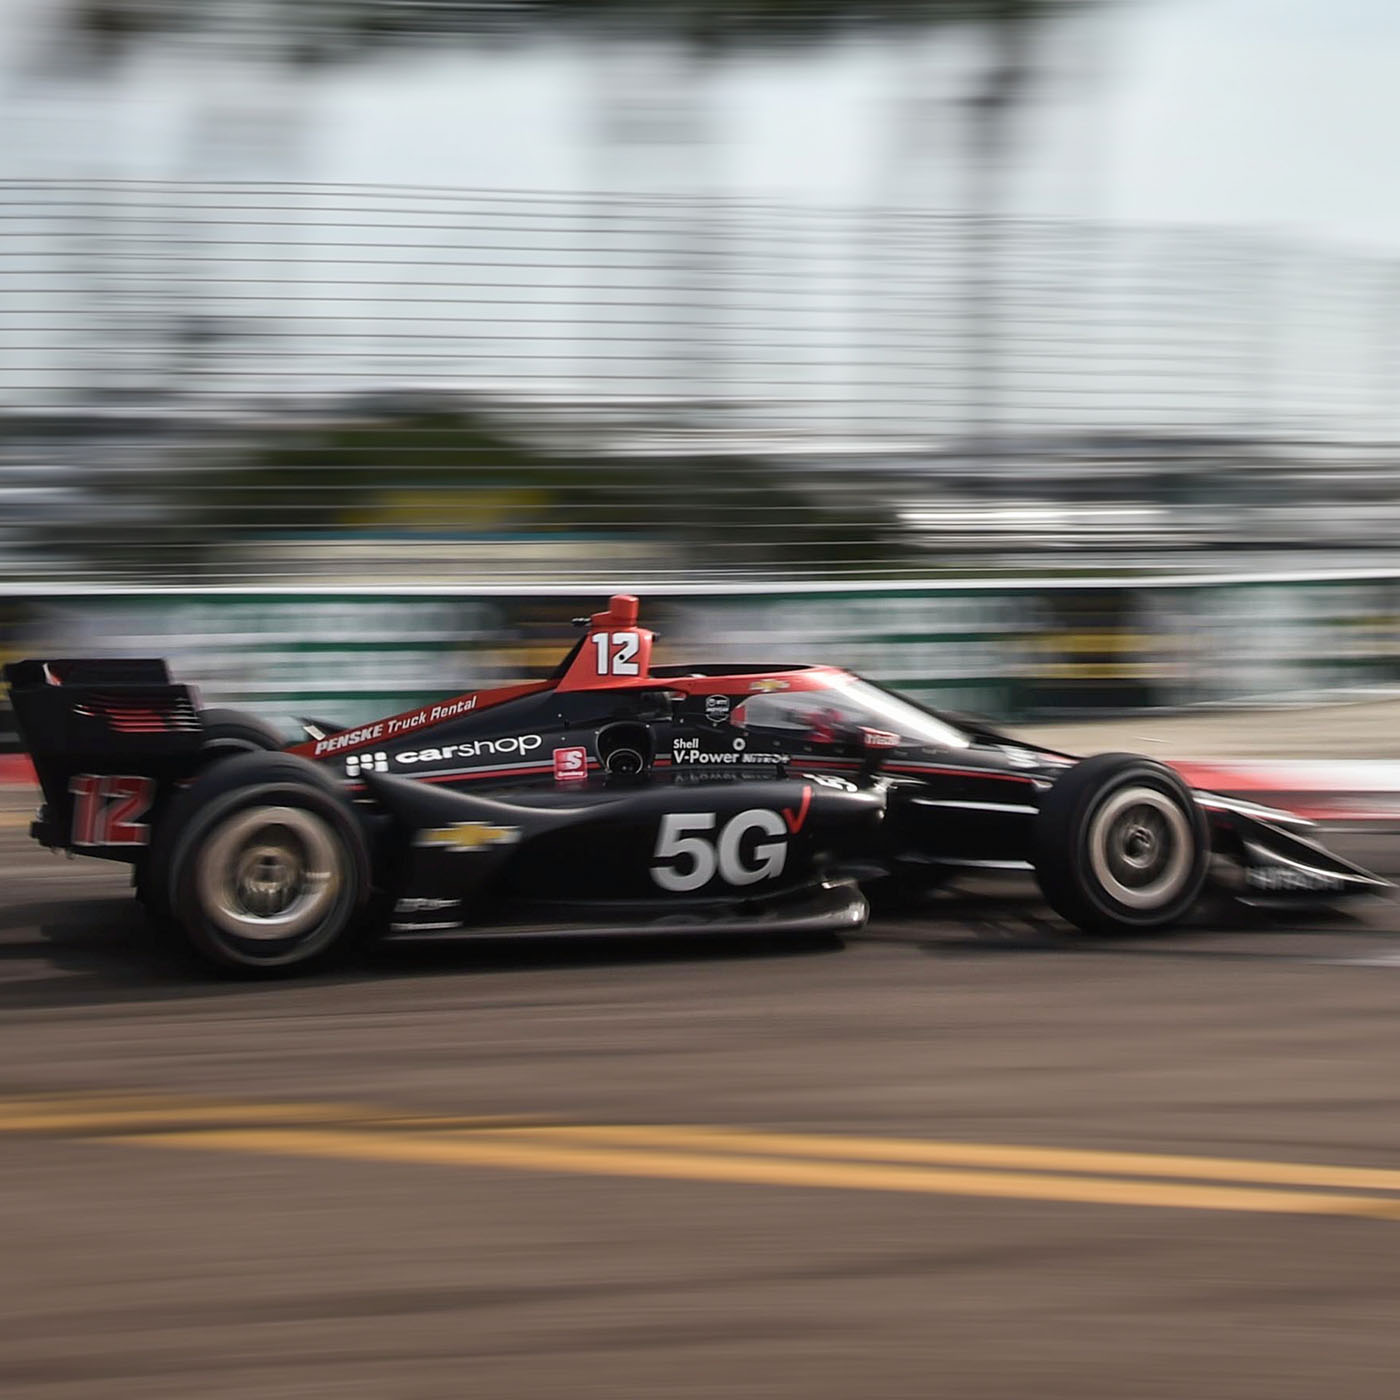 MP 1089: The Week In IndyCar, April 28, with Will Power